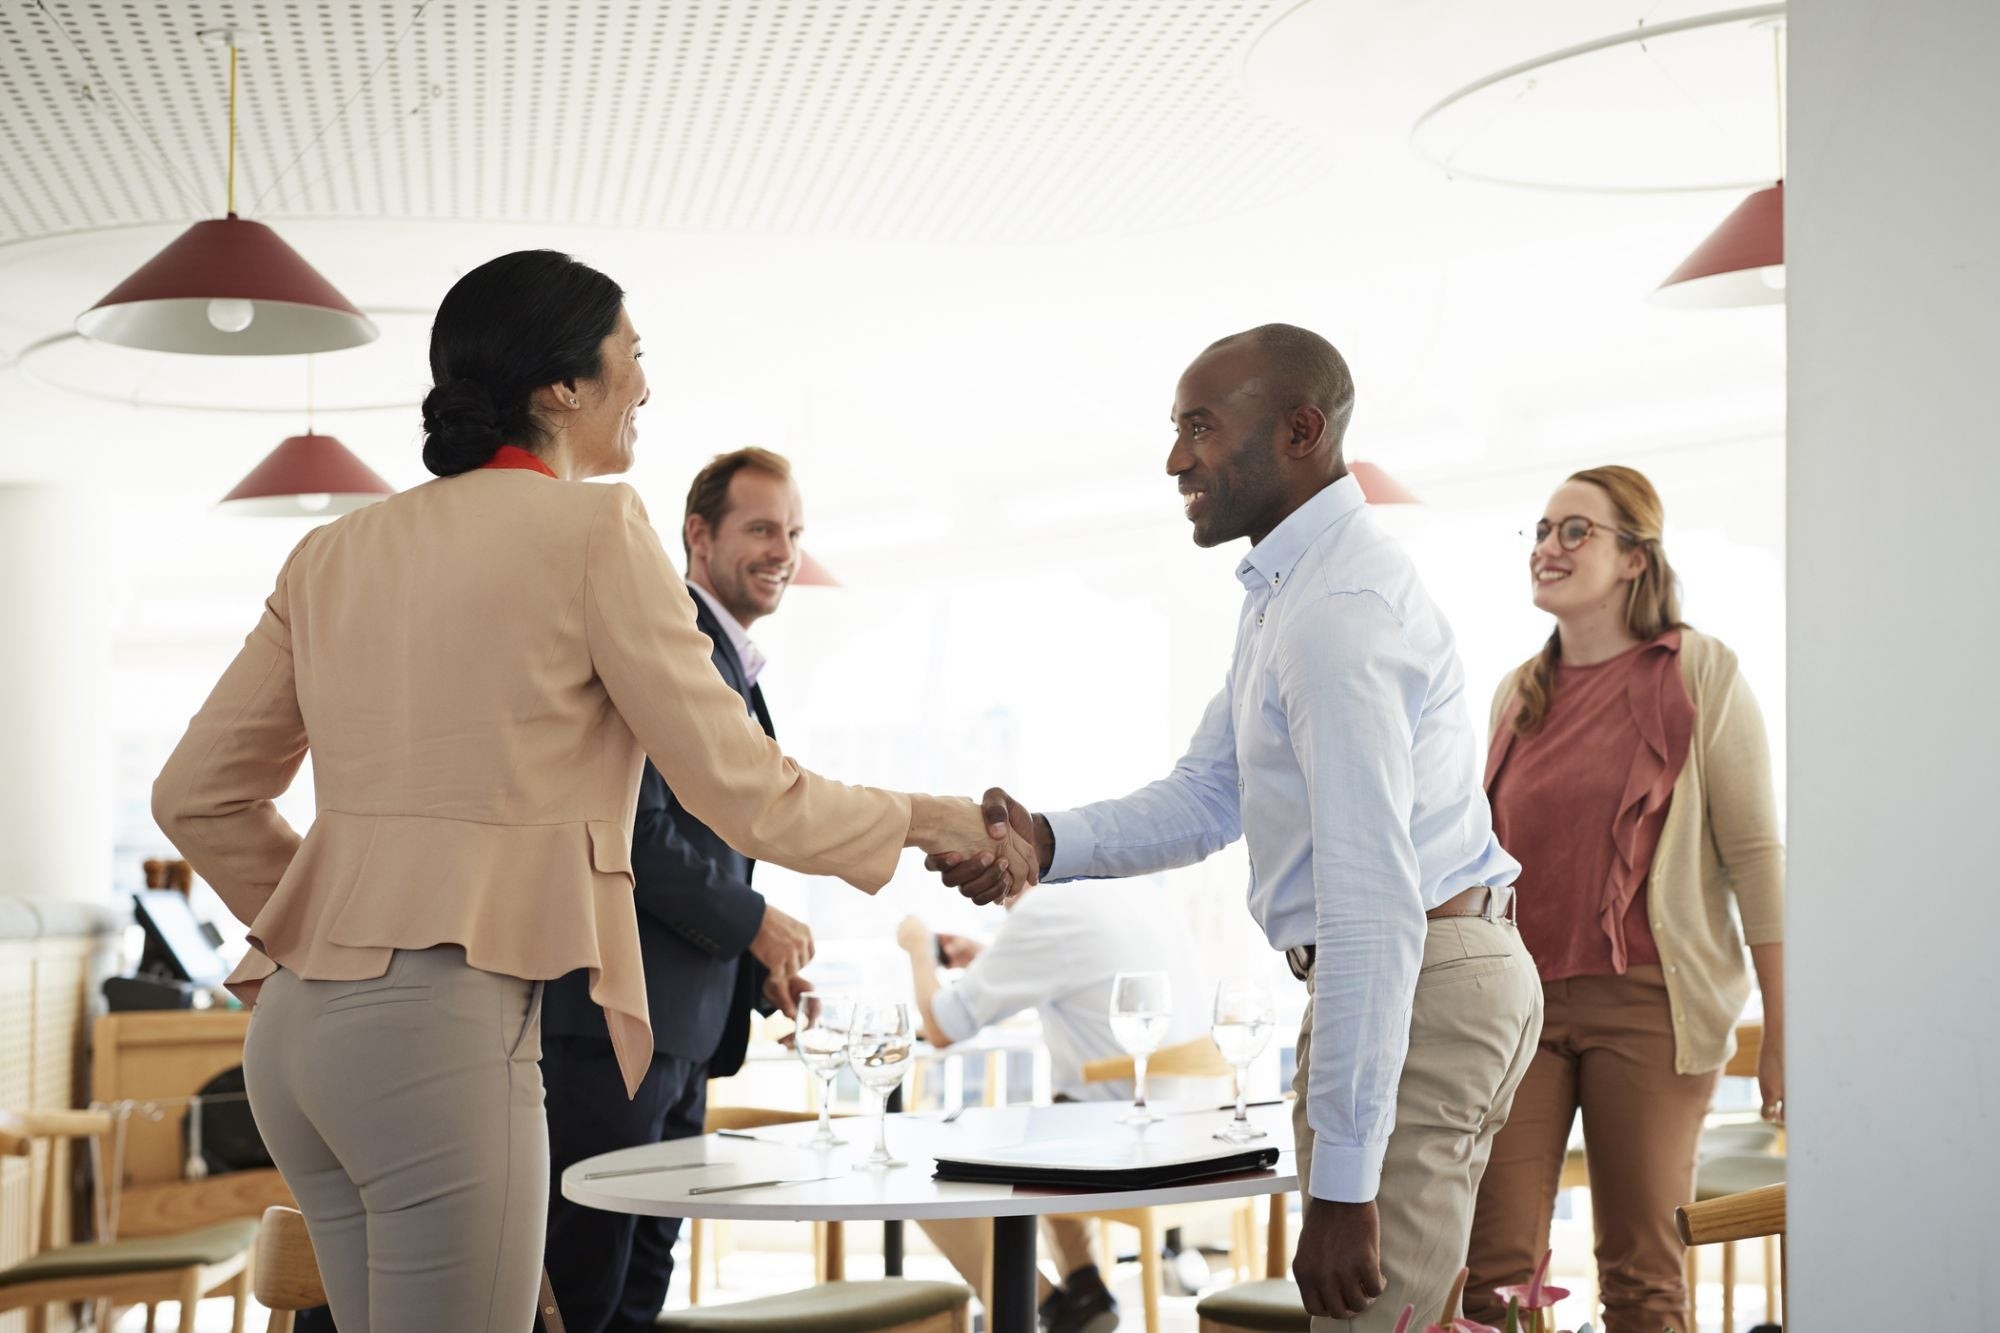 Level Up Your Operations With Win-Win Vendor Relationships